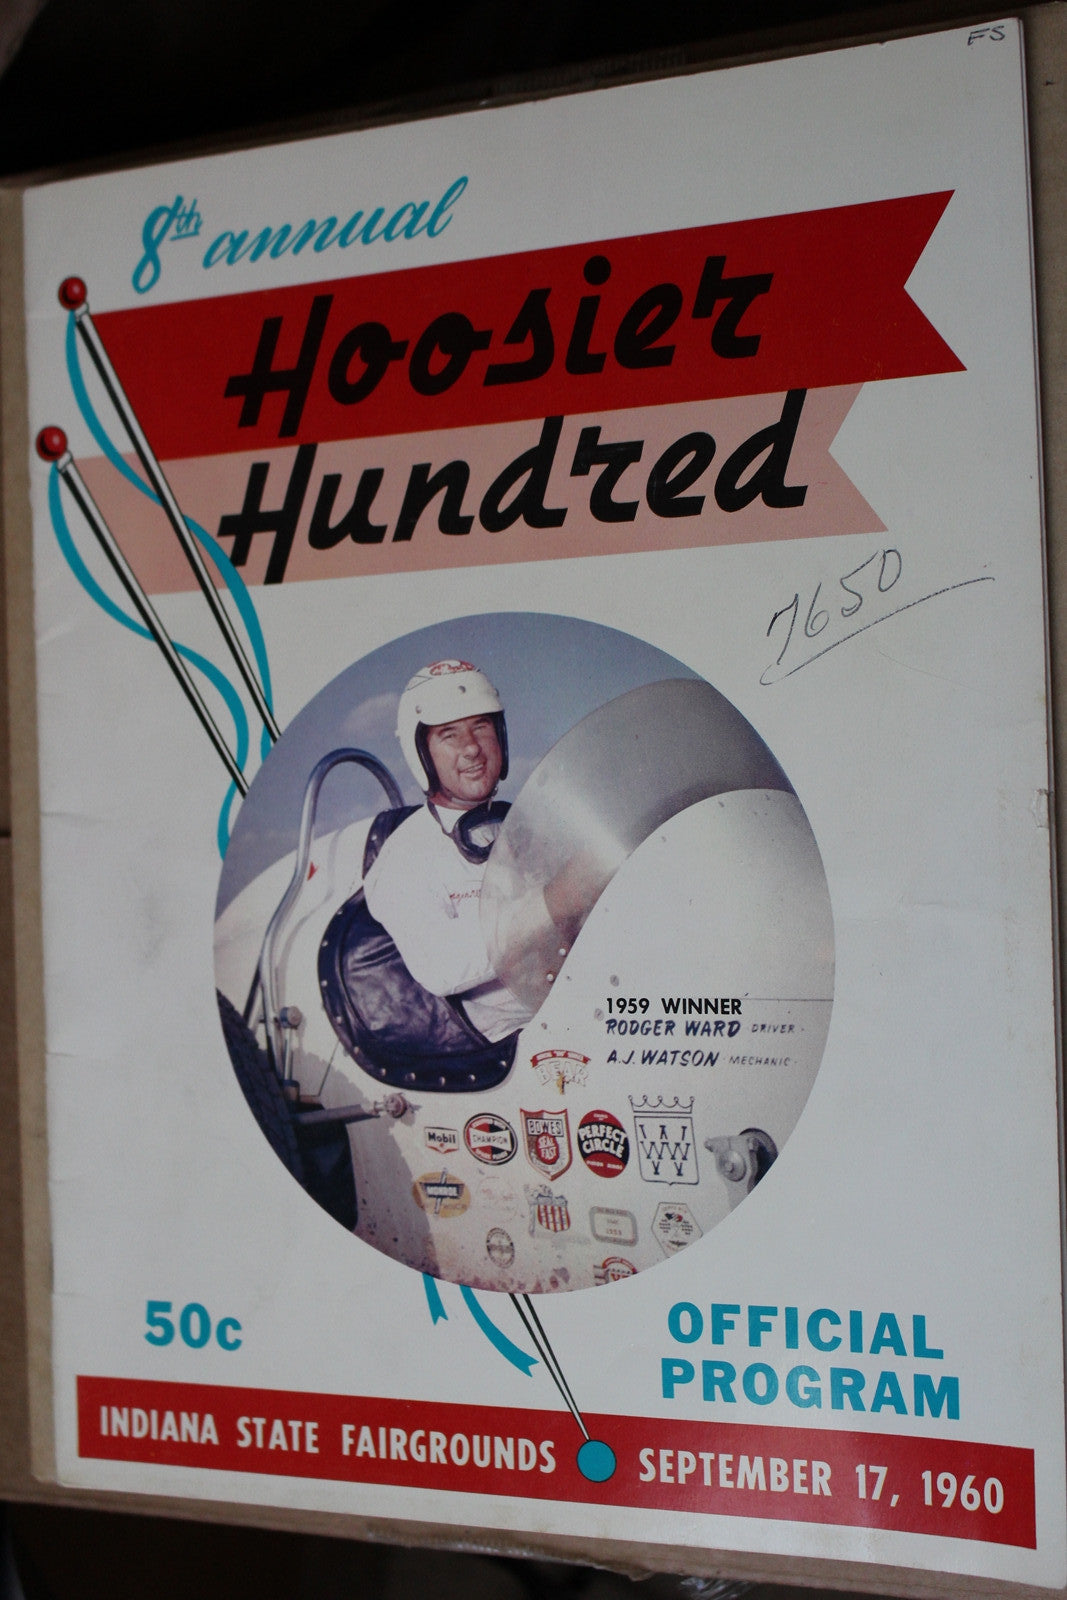 1960 Hoosier Hundred Race Program - Vintage Indy Sports